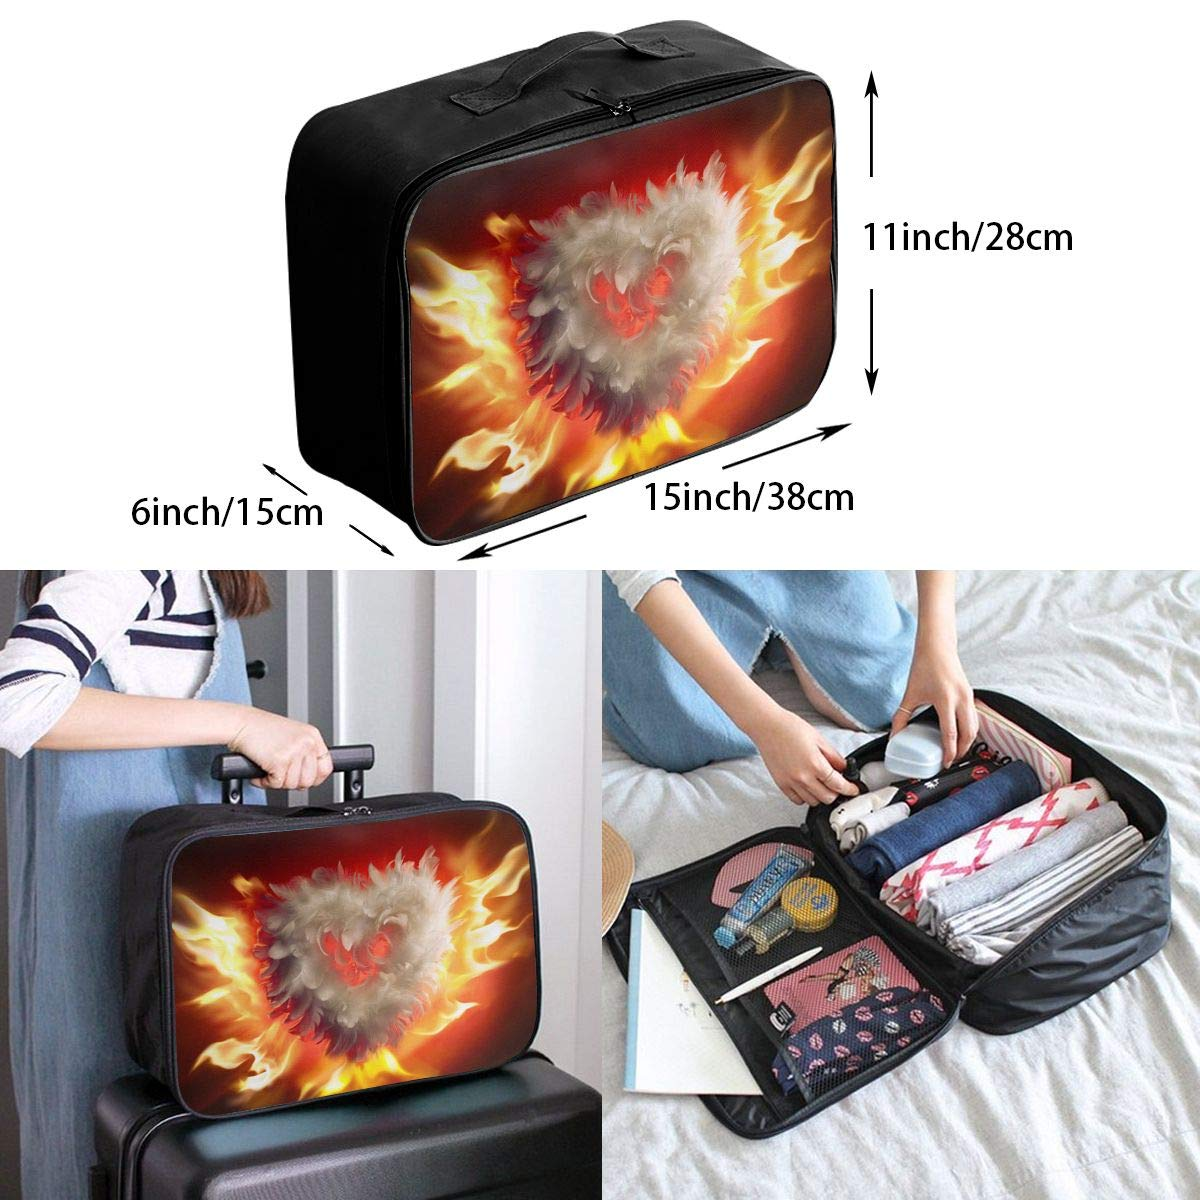 Travel Luggage Duffle Bag Lightweight Portable Handbag Feather Fire Heart Large Capacity Waterproof Foldable Storage Tote